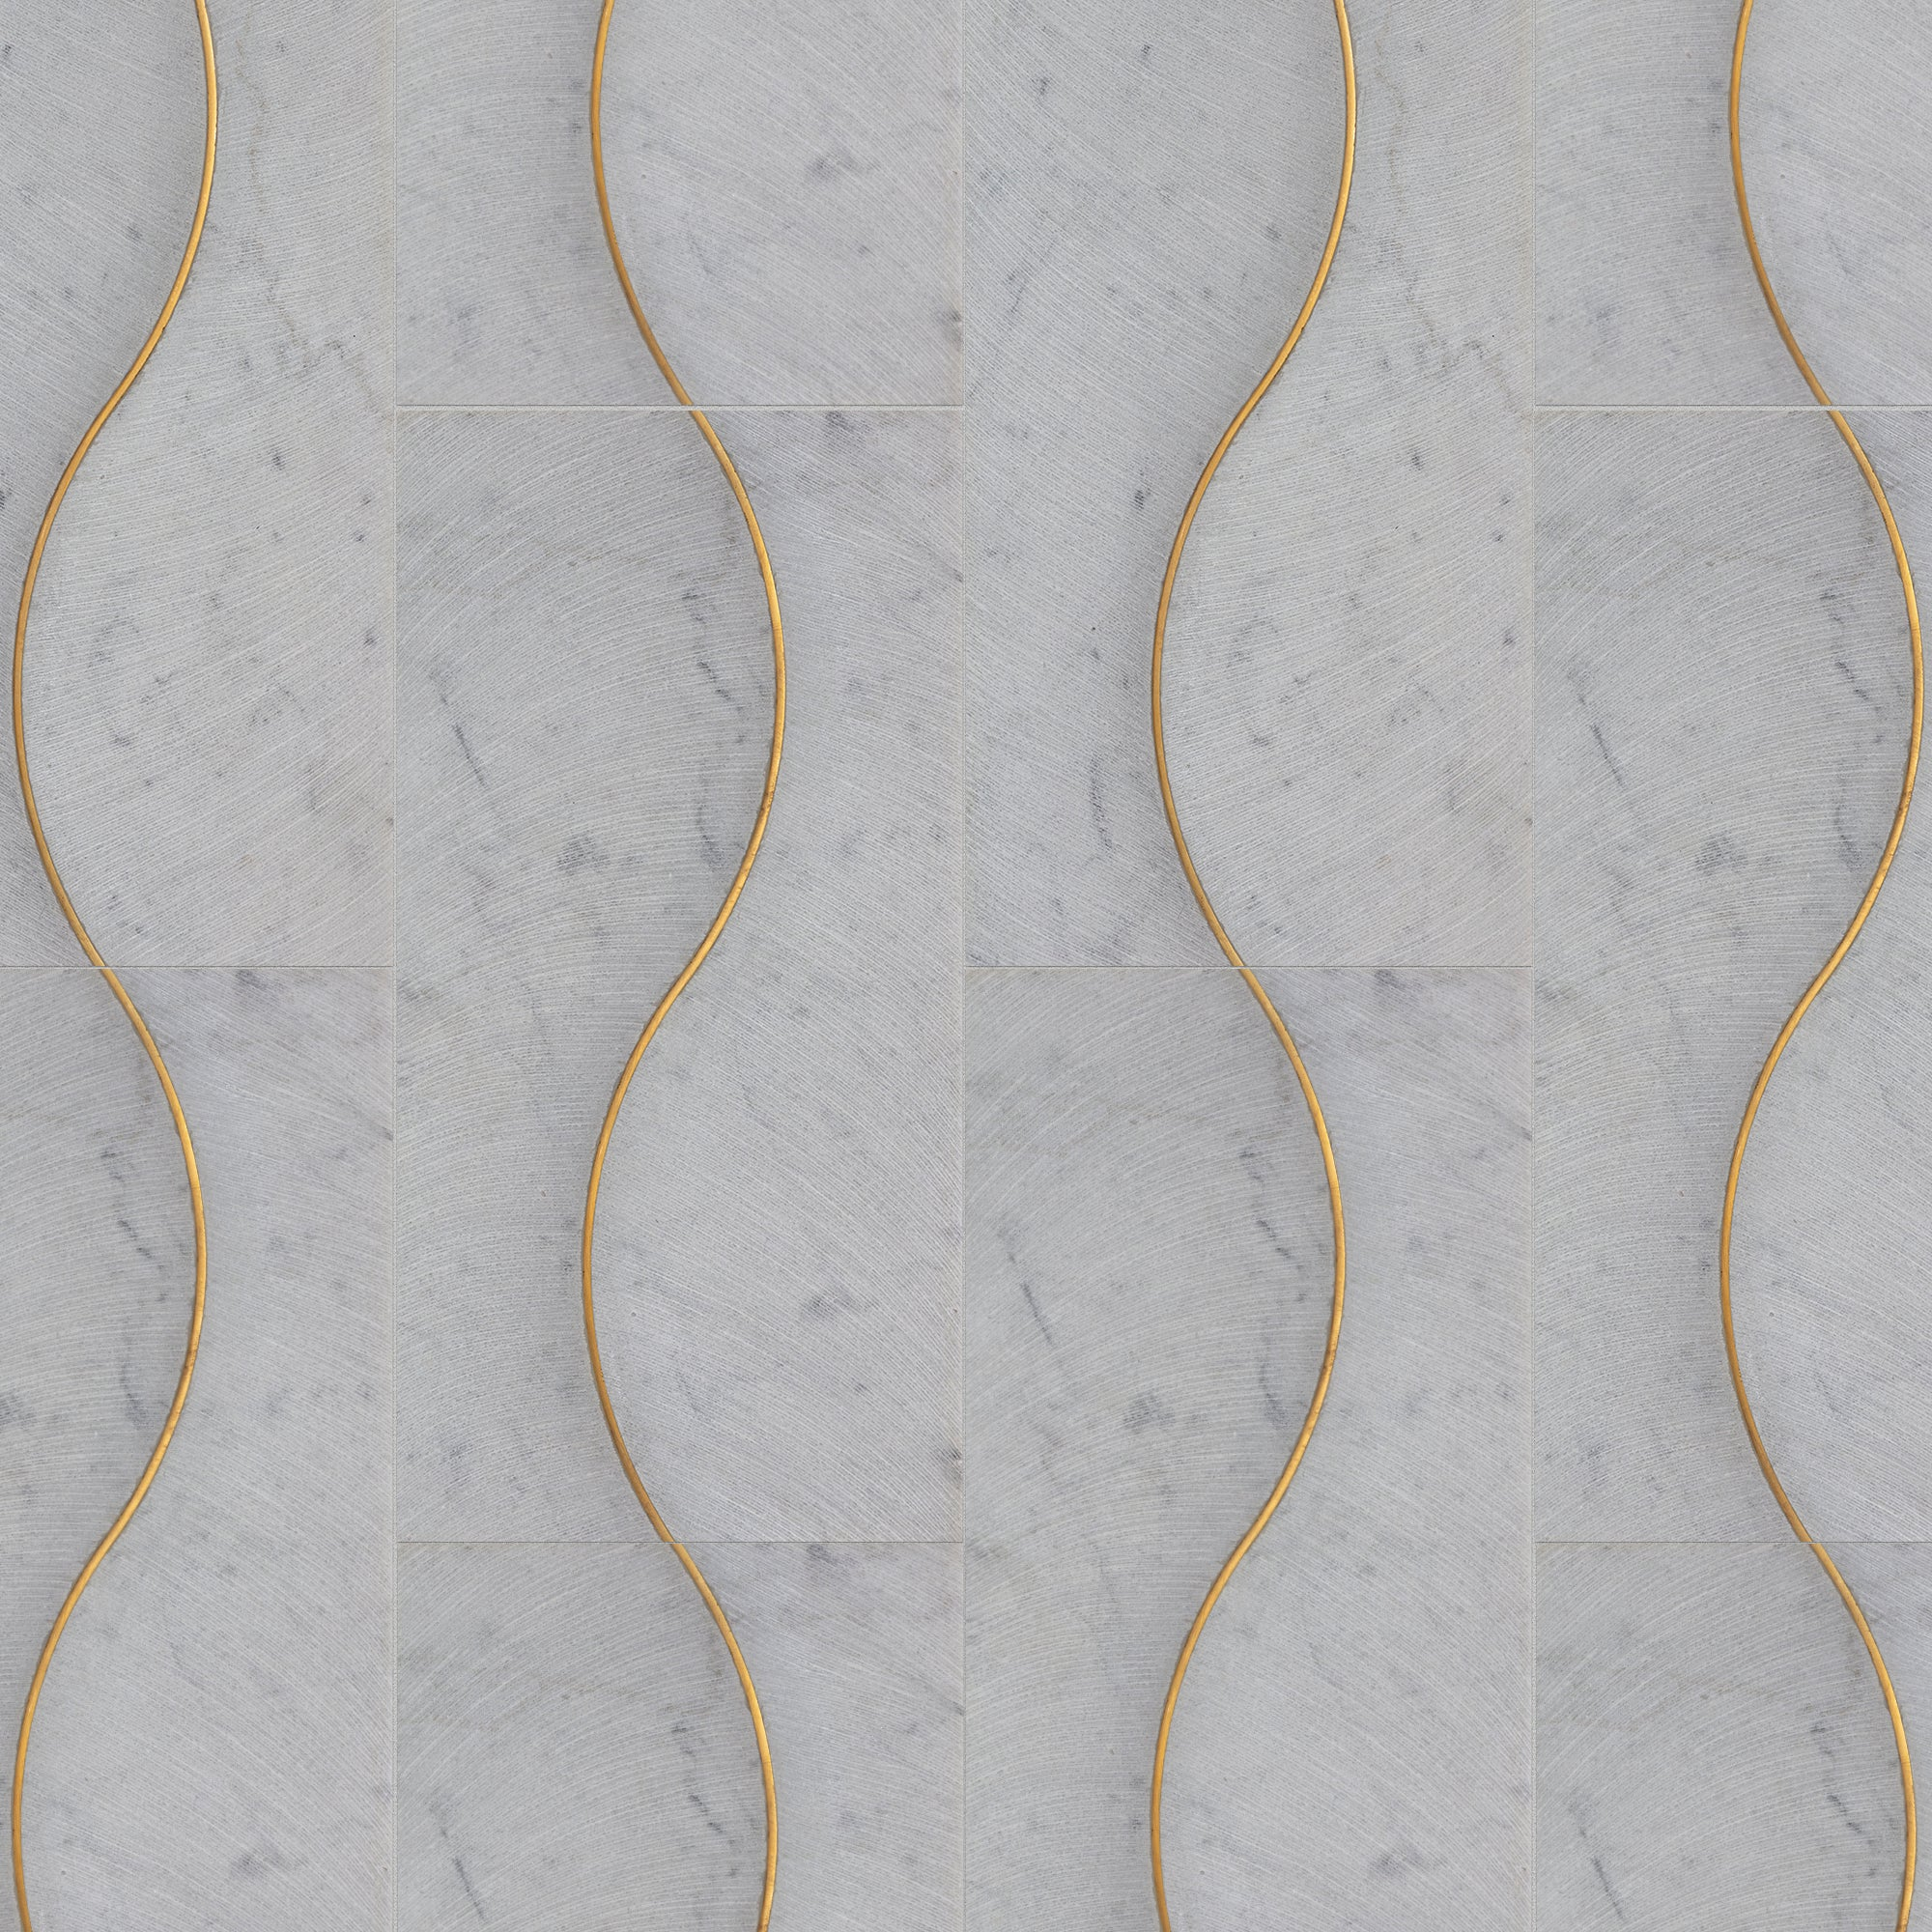 Alison Rose Zephyr Bianco Carrara Swatch Card  Textured Samples product photo